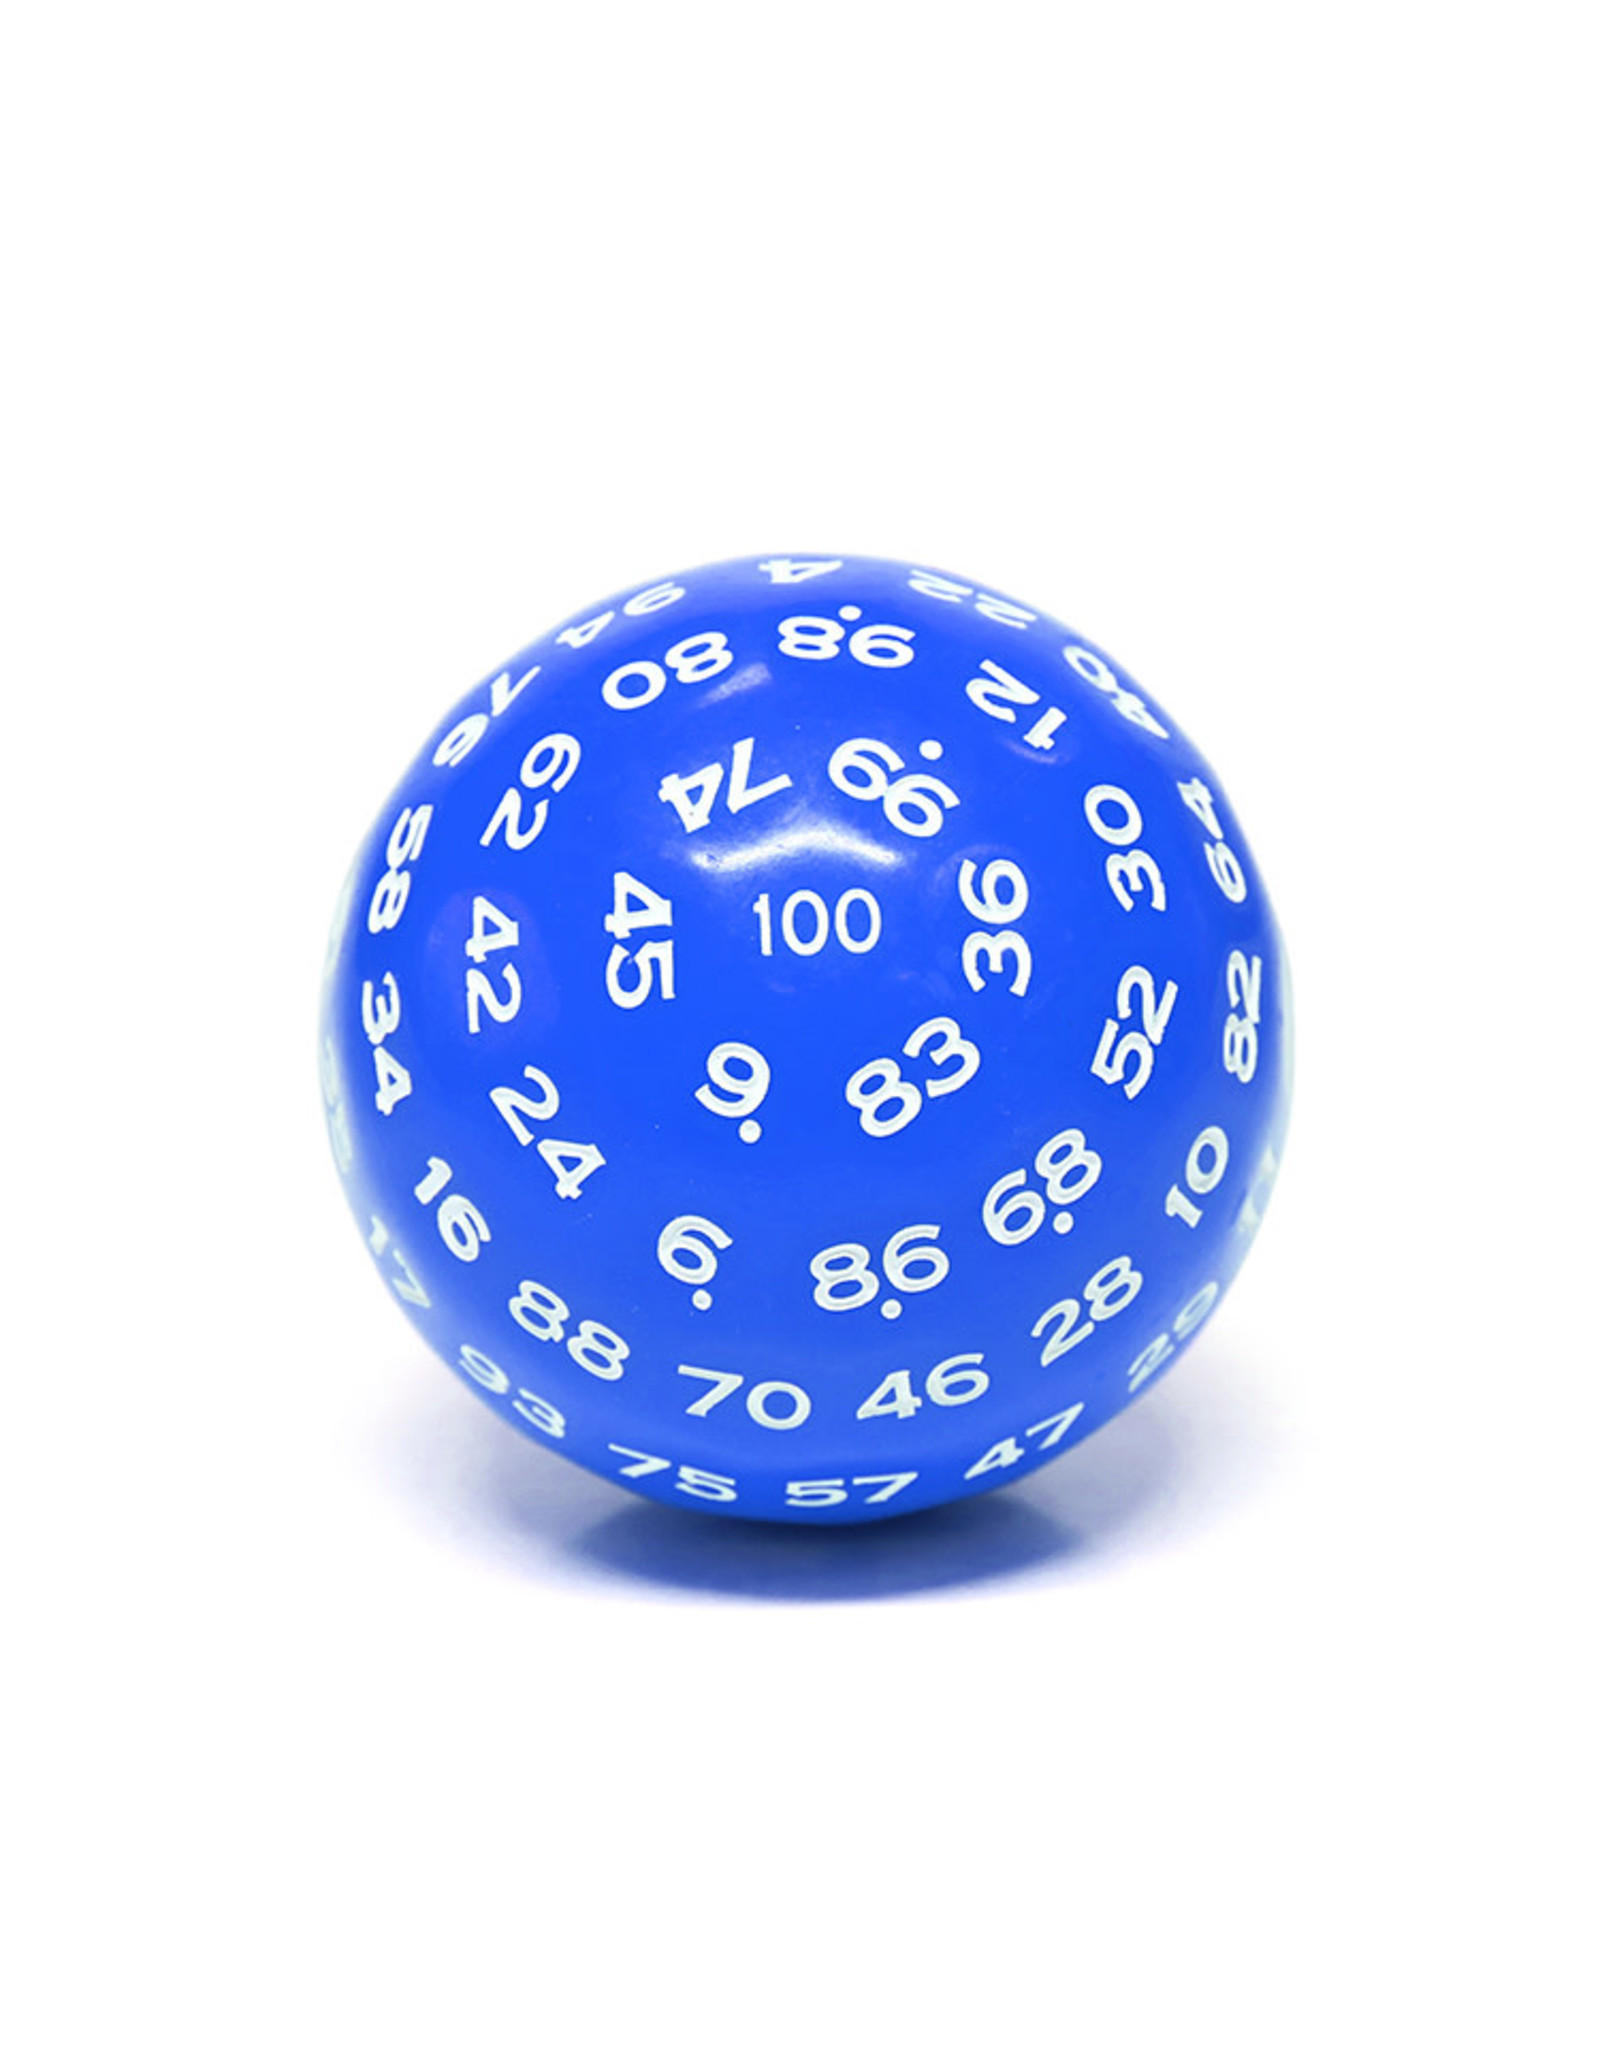 HD Dice, LLC. 100 Sided Die (D100)